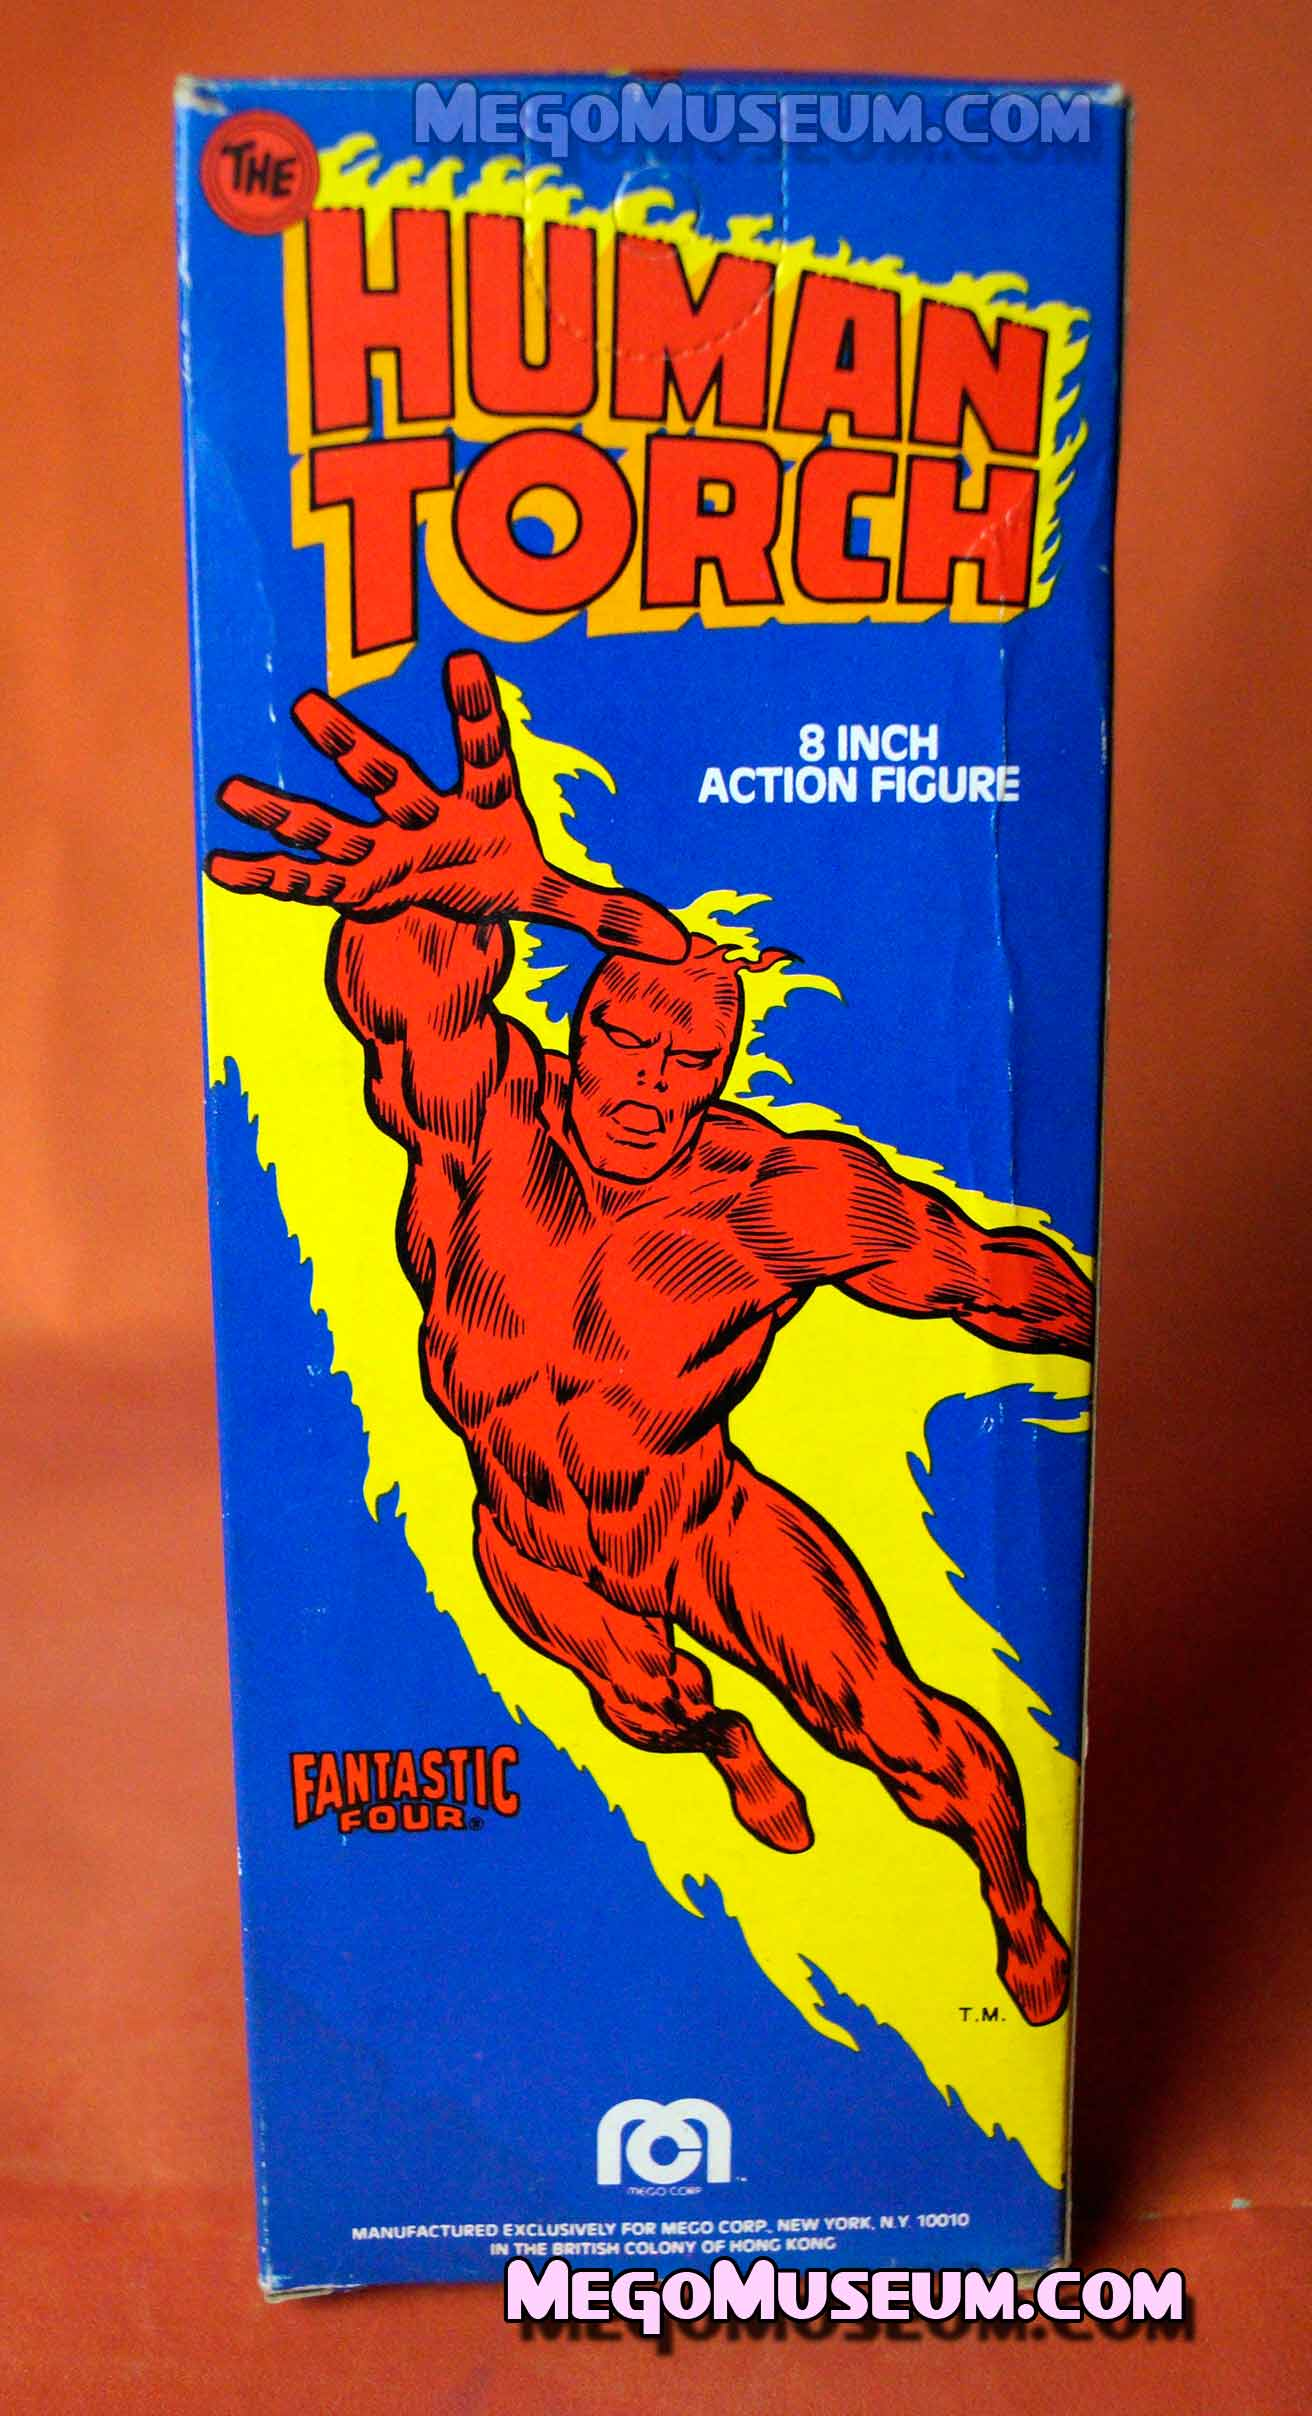 Back of the Mego Human Torch WIndow Box